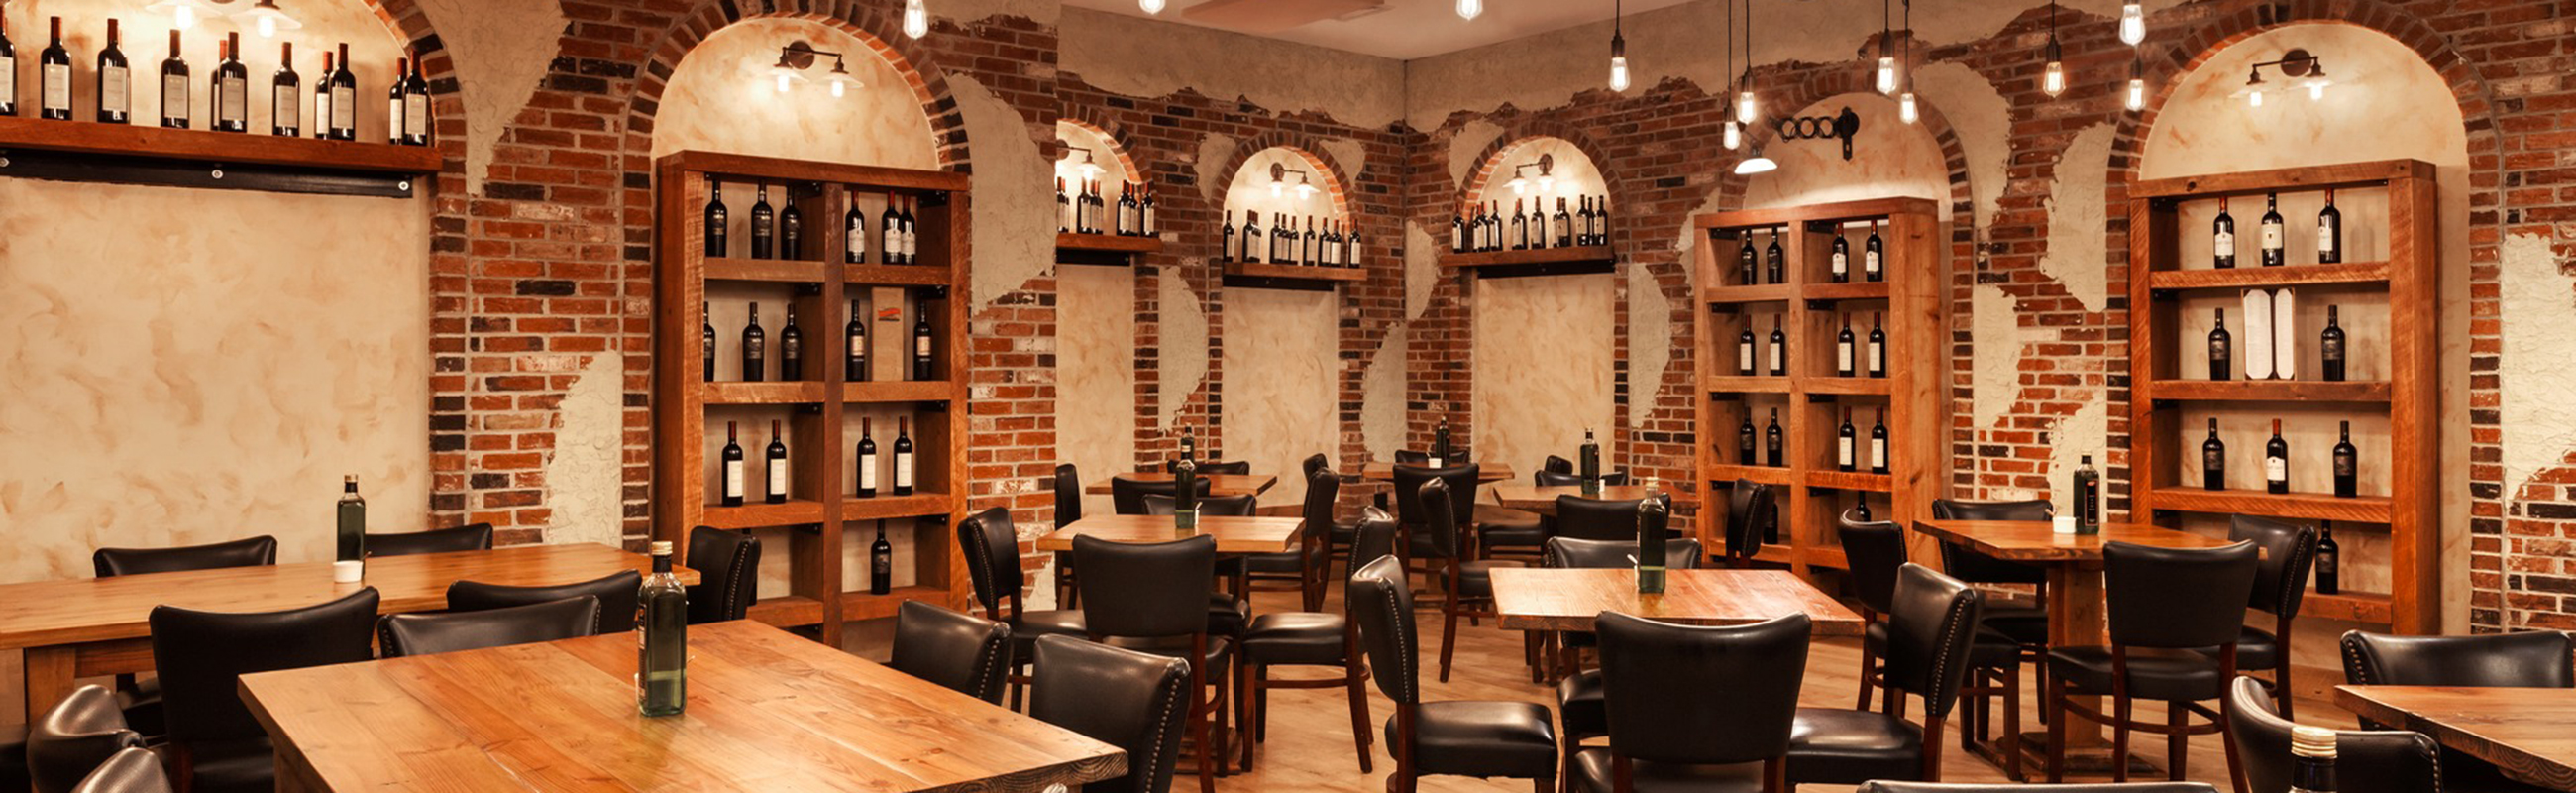 authentic Italian dining with a full-service deli